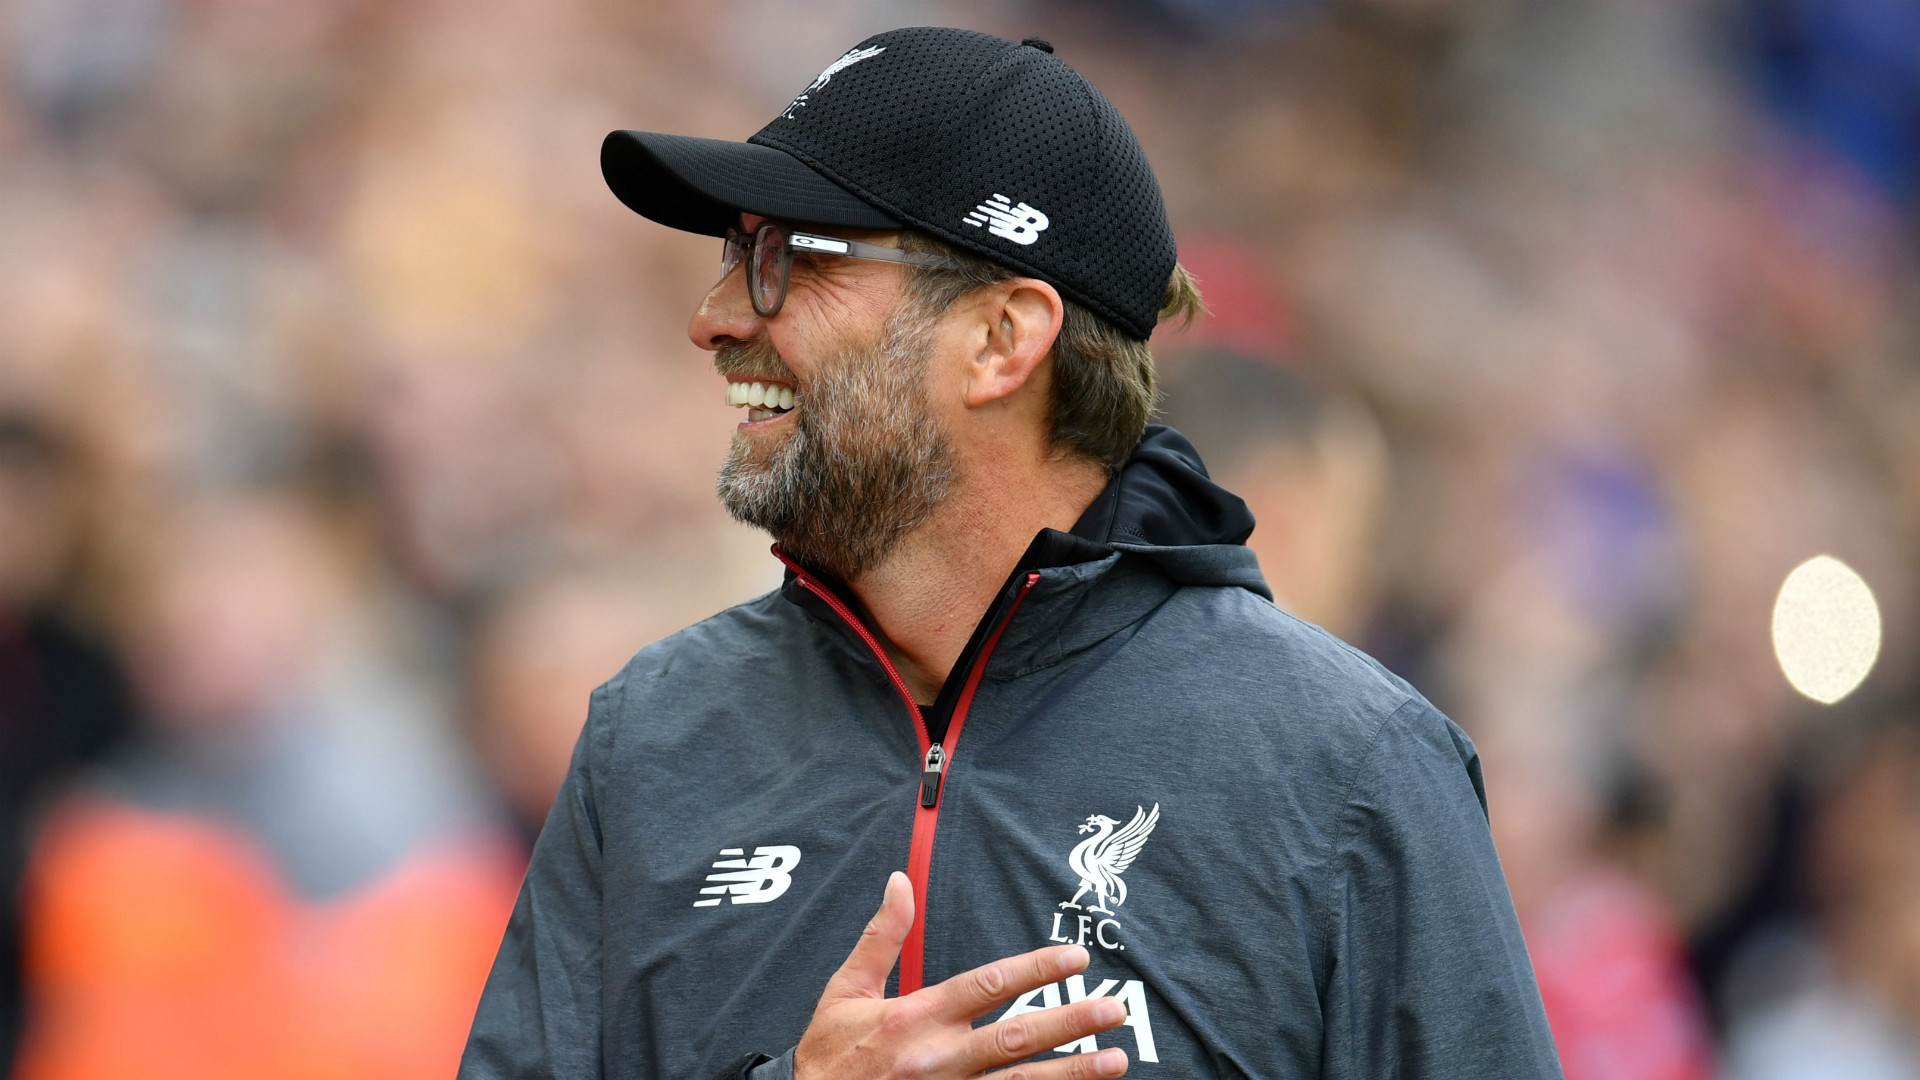 Watch Liverpool manager Klopp donate R190,000 to South African youth club